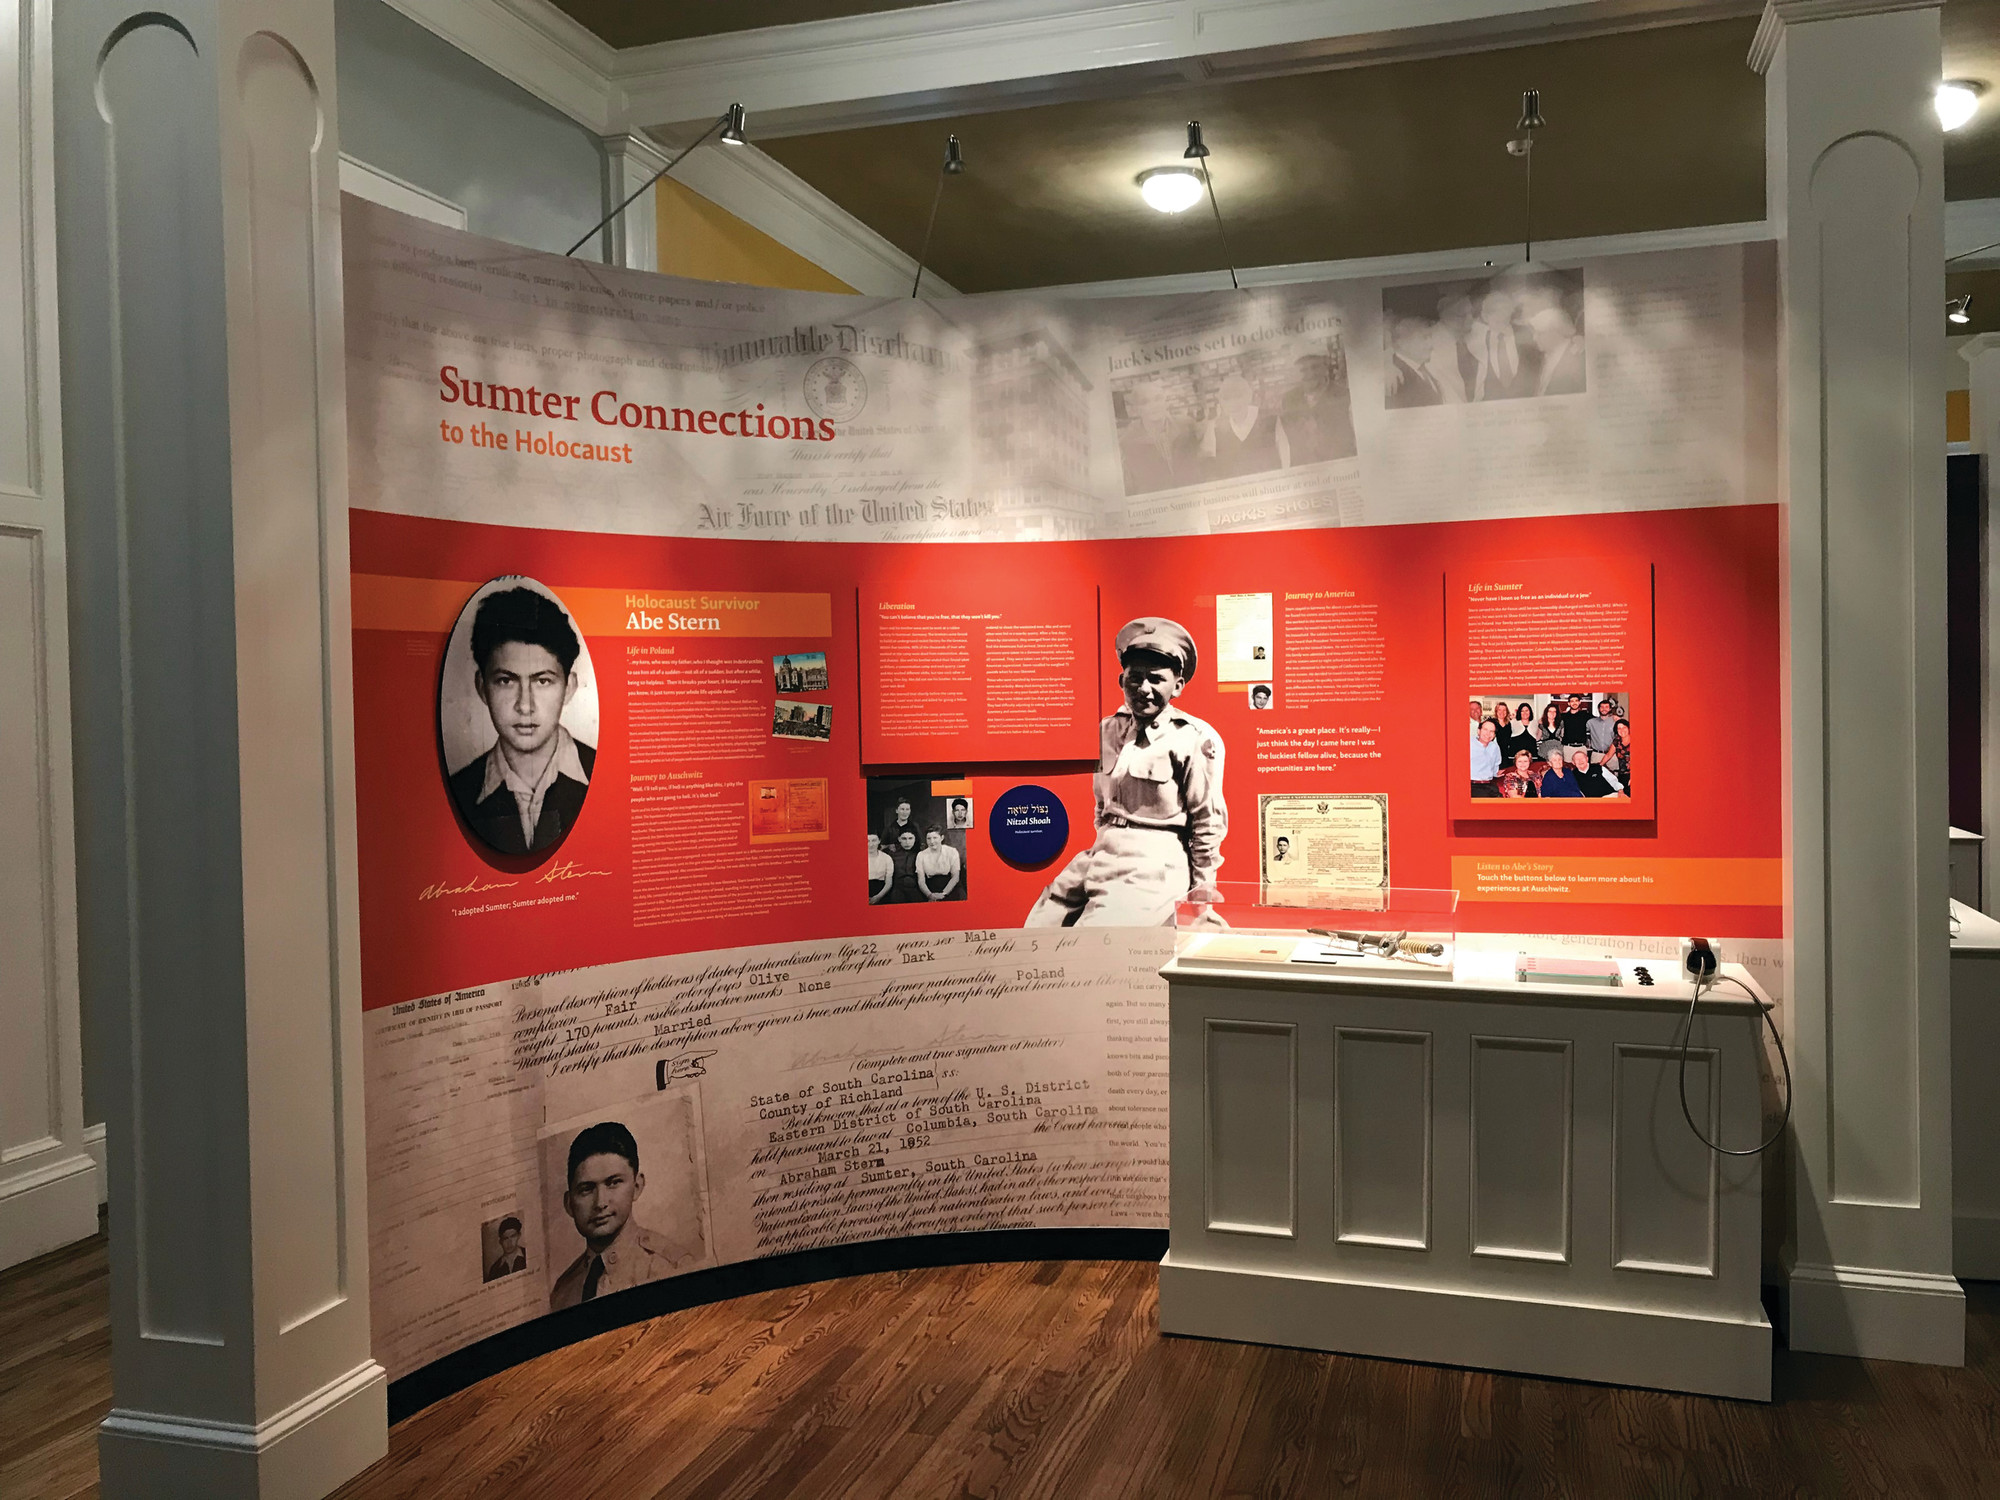 Holocaust survivor and Sumter resident Abe Stern's experiences are explored in an exhibit that also includes information on other Sumter residents affected by the Holocaust. The exhibit is part of the new Temple Sinai Jewish History Center, opening Friday.